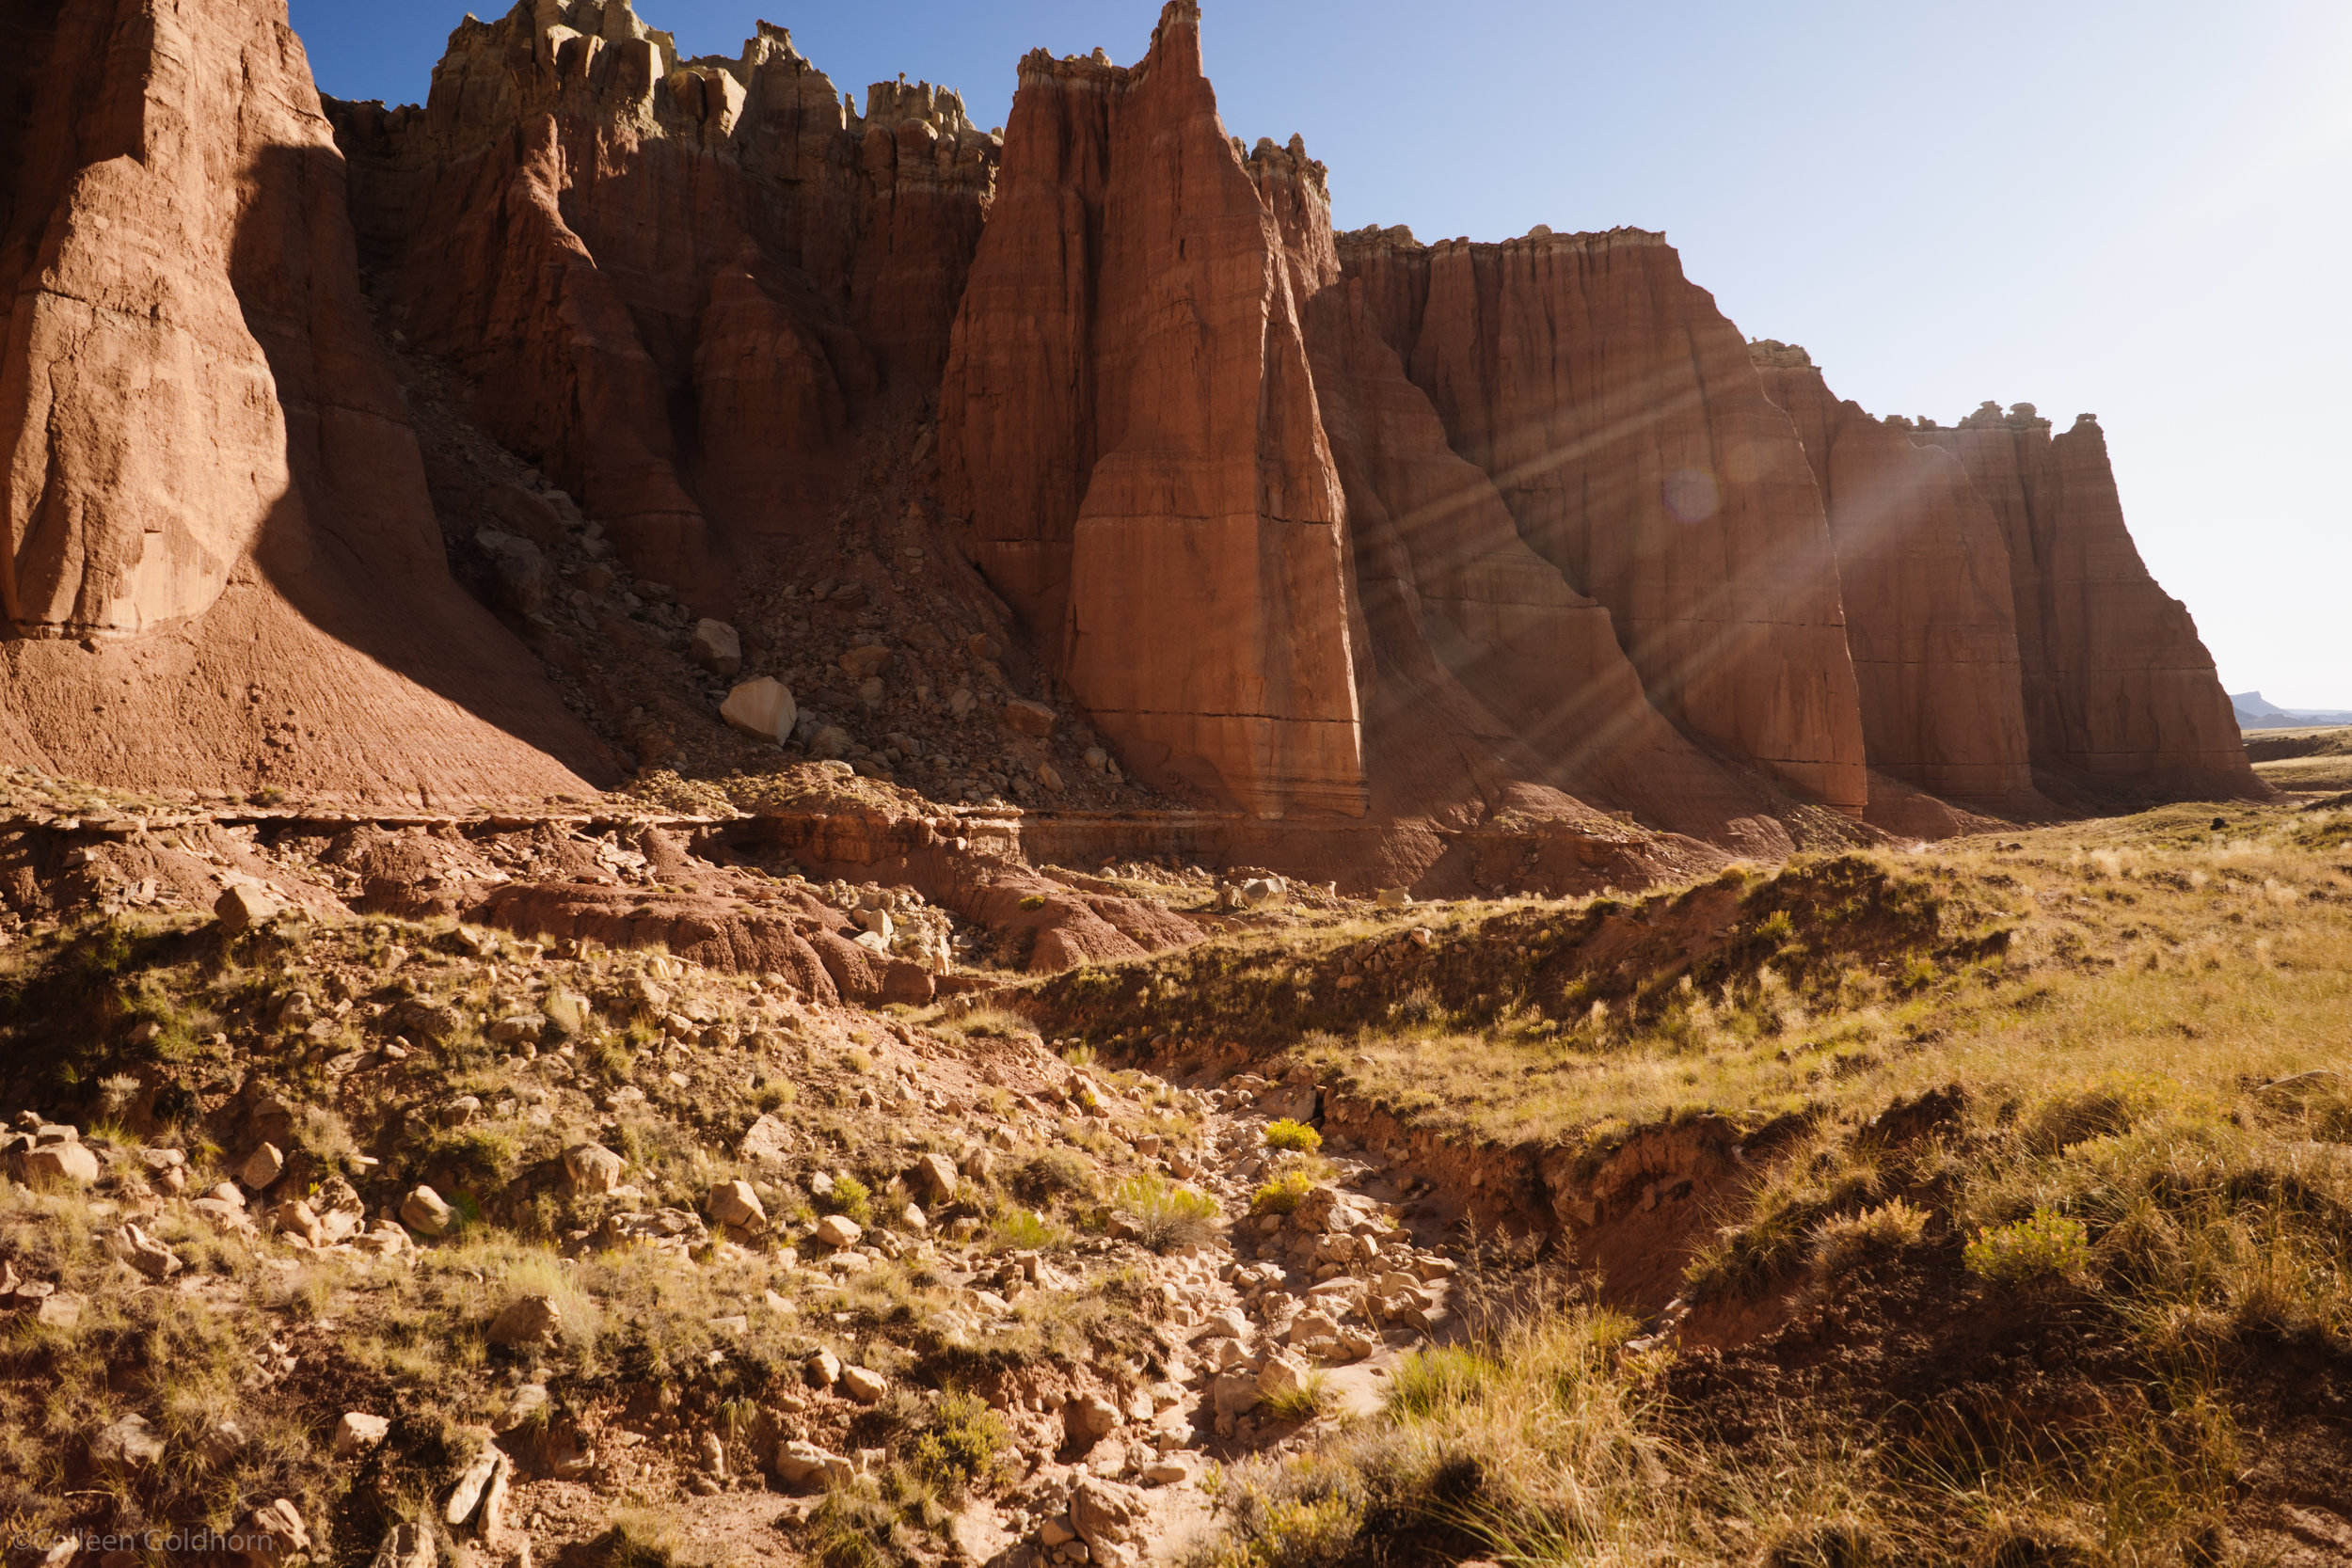 We made a few other stops that morning, including Gypsum Sinkhole,